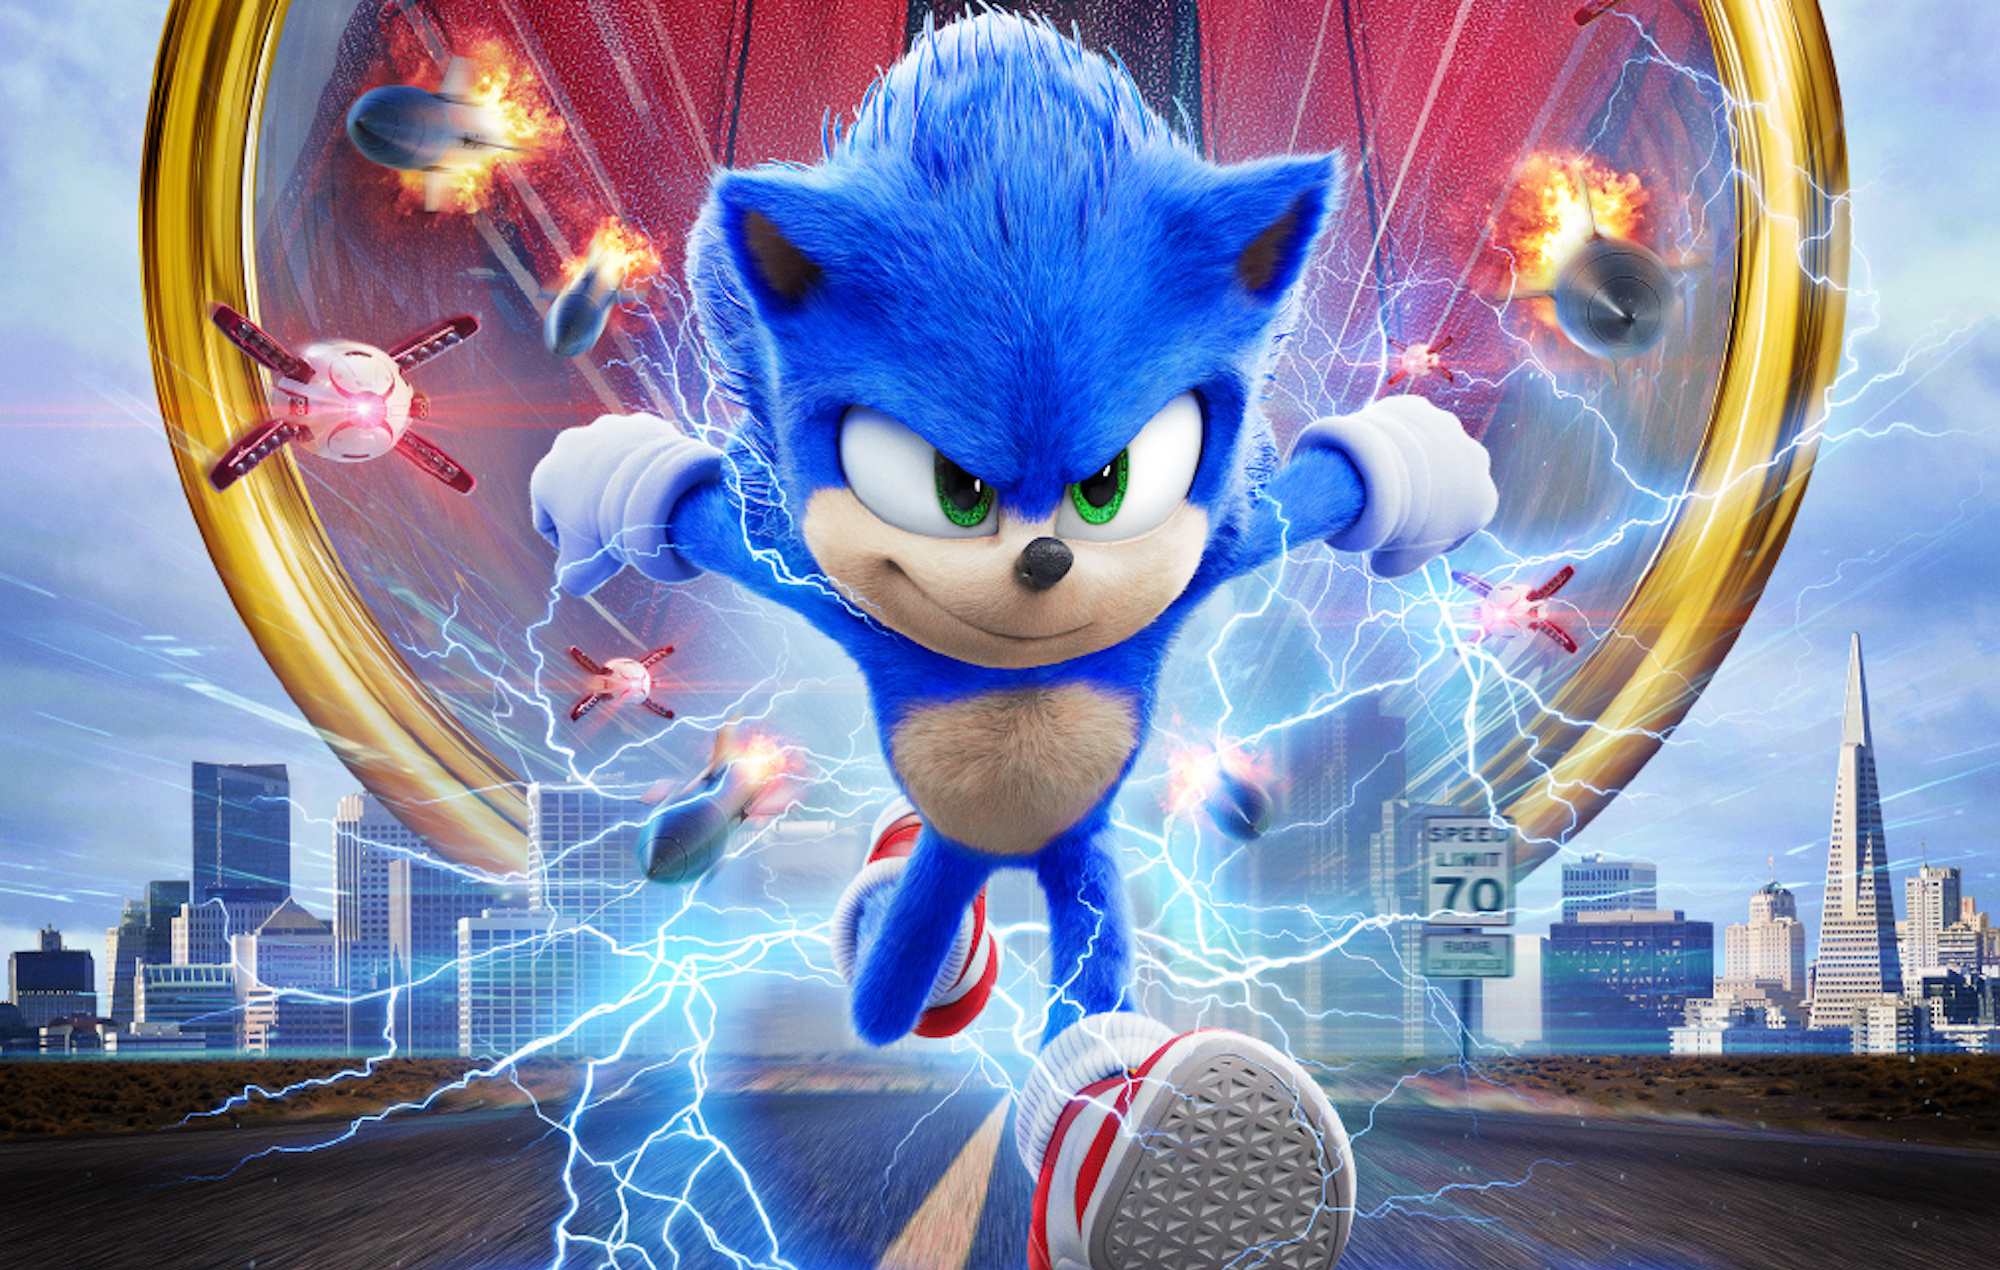 6 Things I Want To See In A Sonic The Hedgehog Sequel Henchman 4 Hire